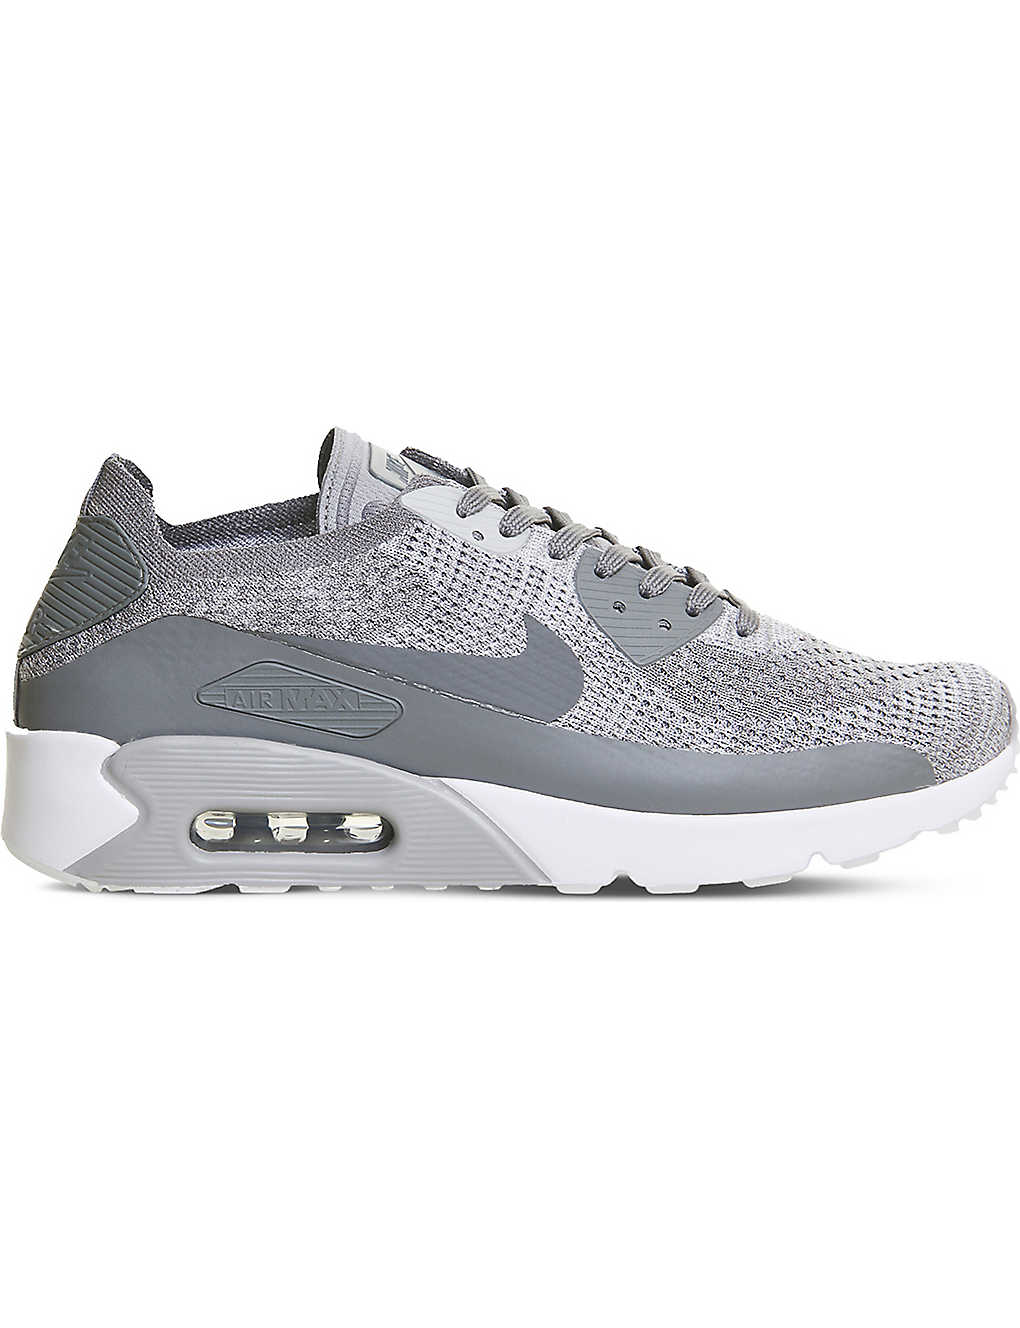 235a6867c71b ... Air Max 90 Ultra 2.0 Flyknit trainers zoom ...